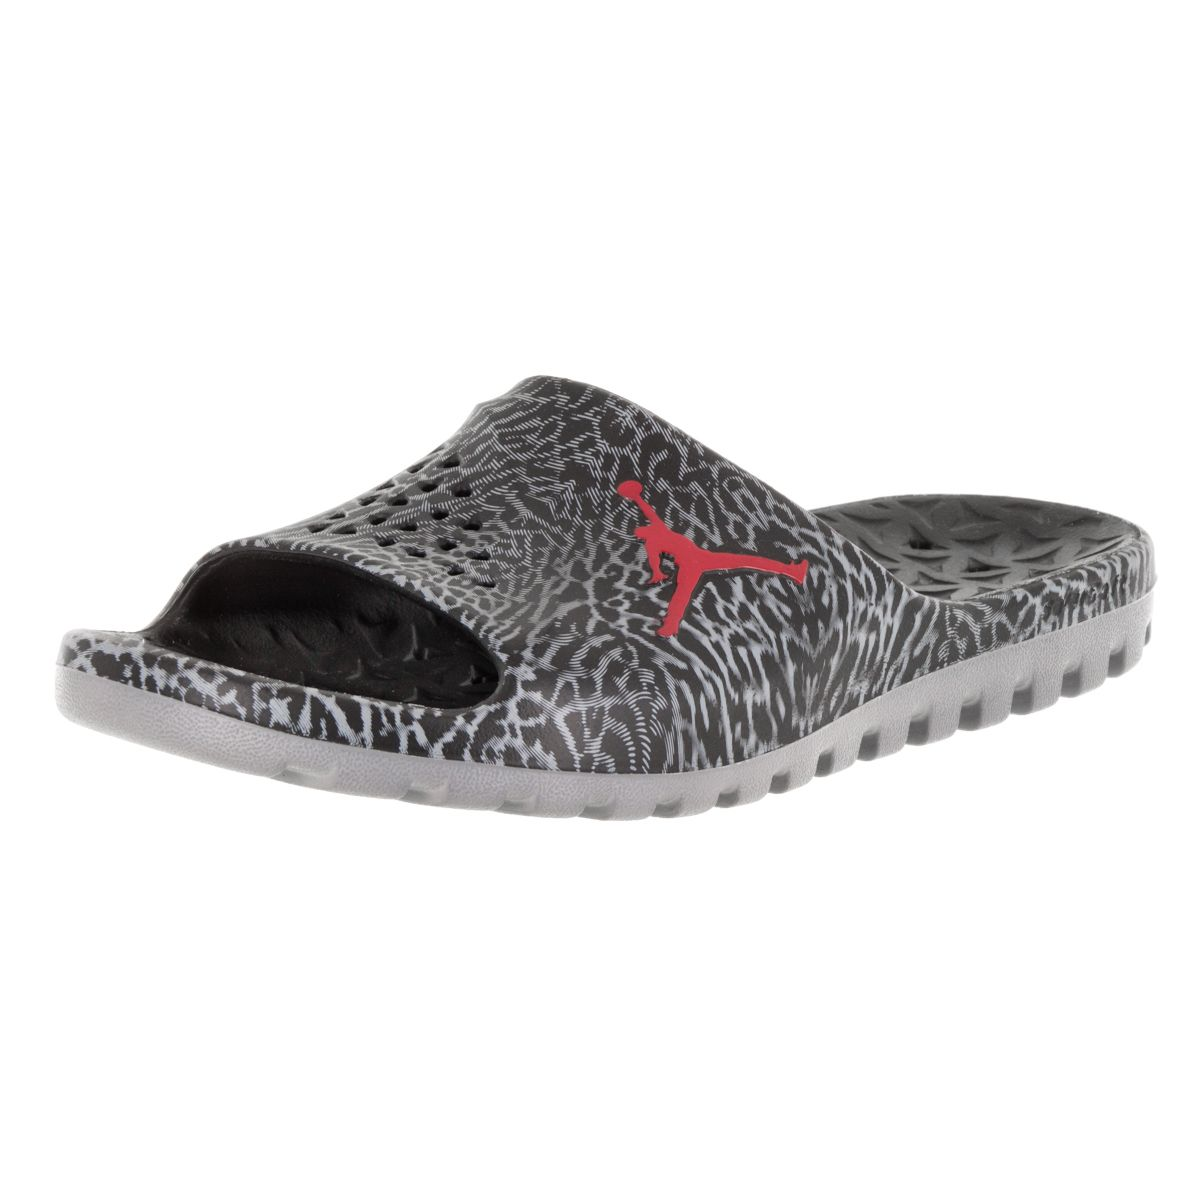 b385c046cf1 Slip on some style and hit the beach in minutes when you wear these black  sandals from Nike . The slightly padded footbed provides hours of comfort,  ...